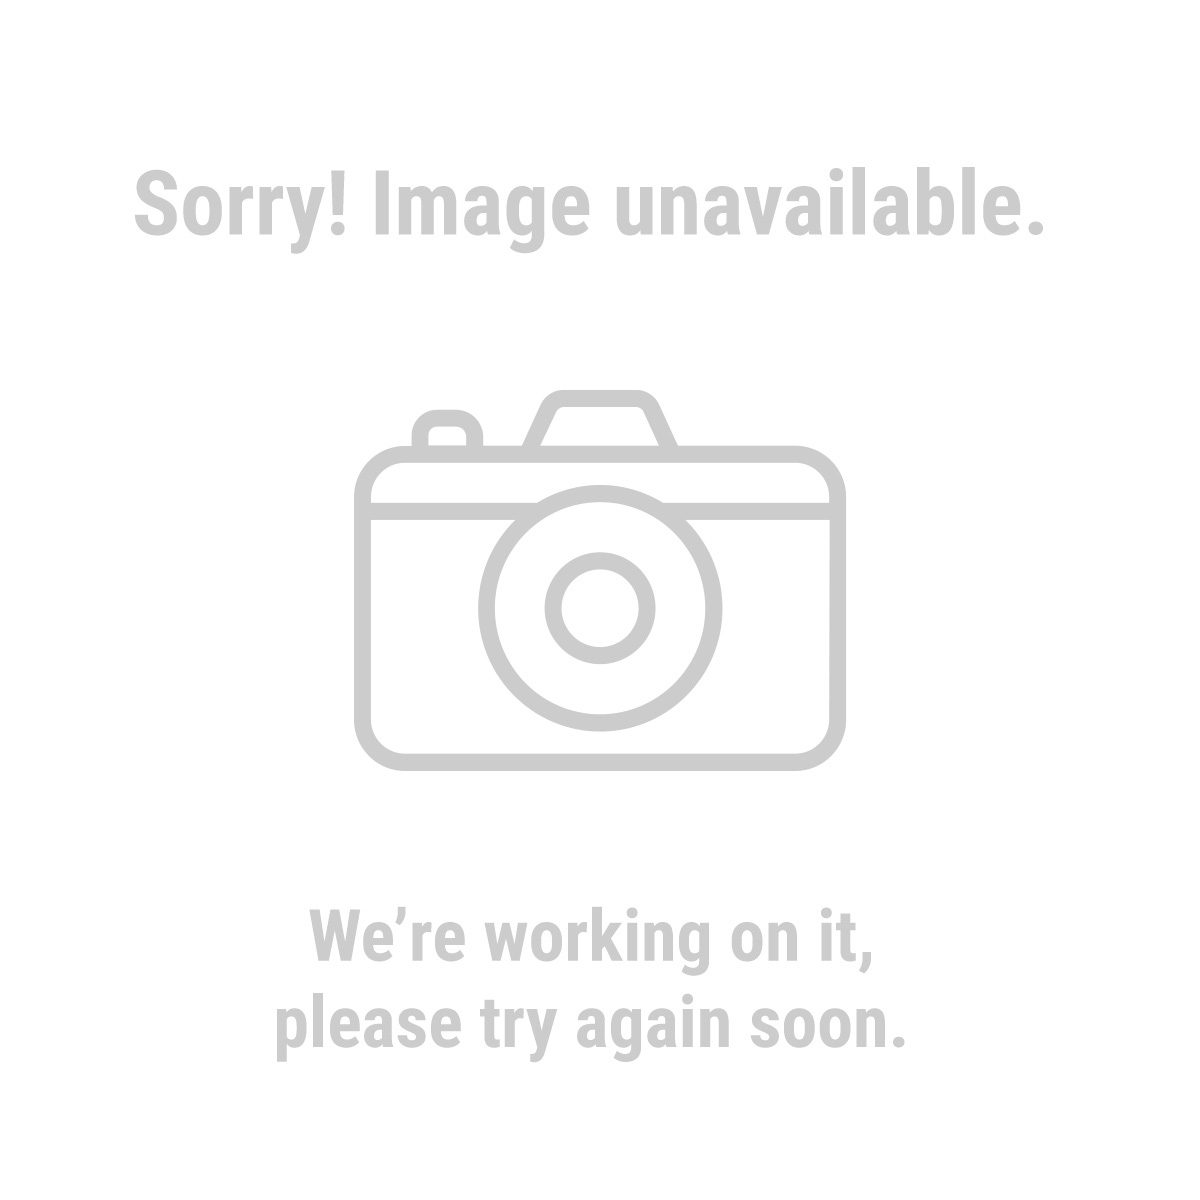 HFT® 69187 15 ft. 2 in. x 19 ft. 6 in. Blue All Purpose/Weather Resistant Tarp